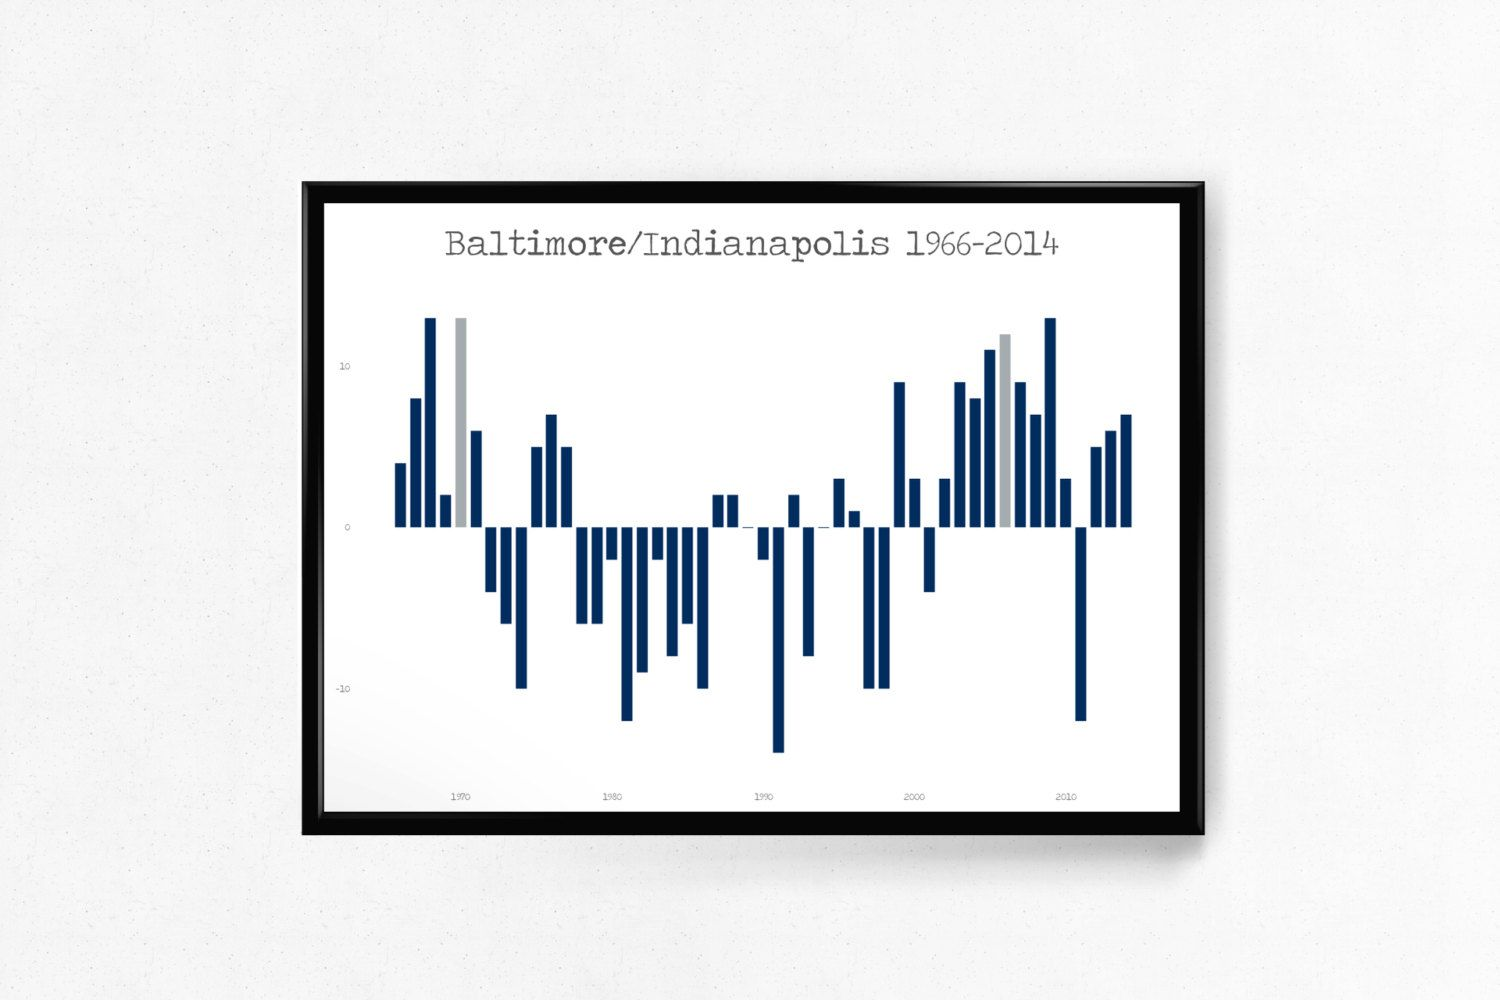 Indianapolis/Baltimore Colts Franchise Data Art Poster